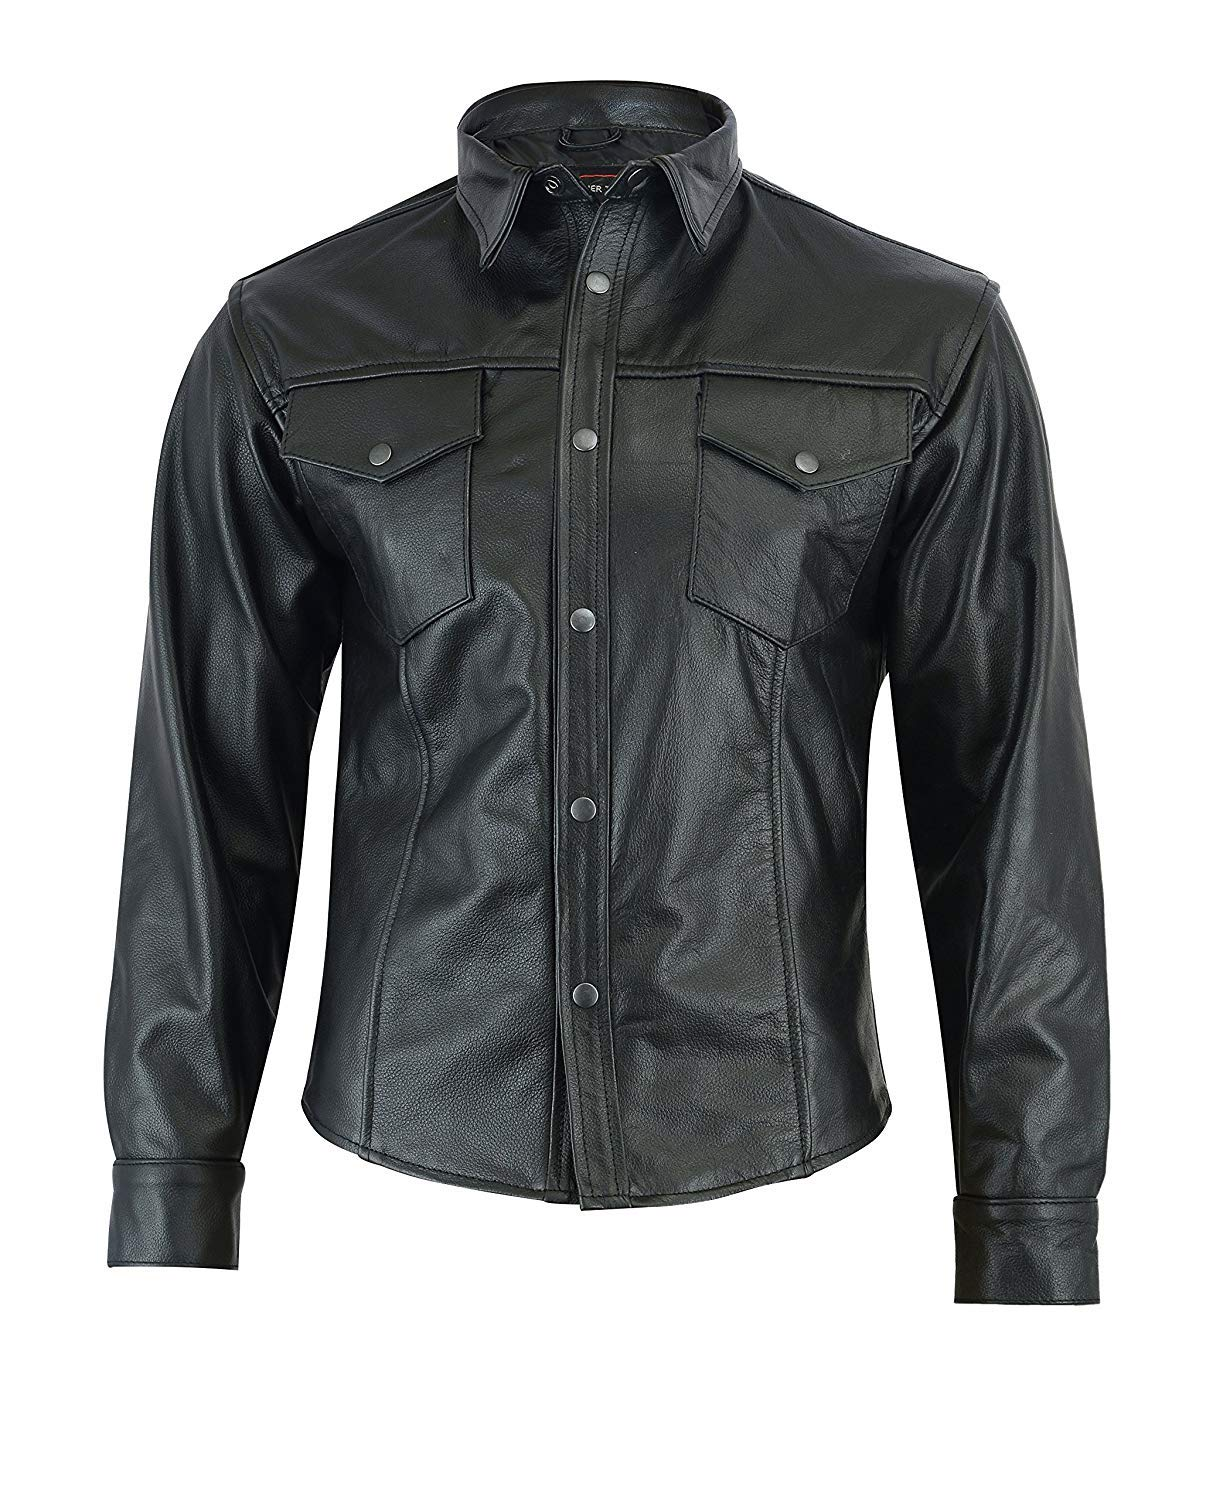 Black Size S Chest 38//97Cm Small Motorcycle Bikers Leather Shirt Ls-2000